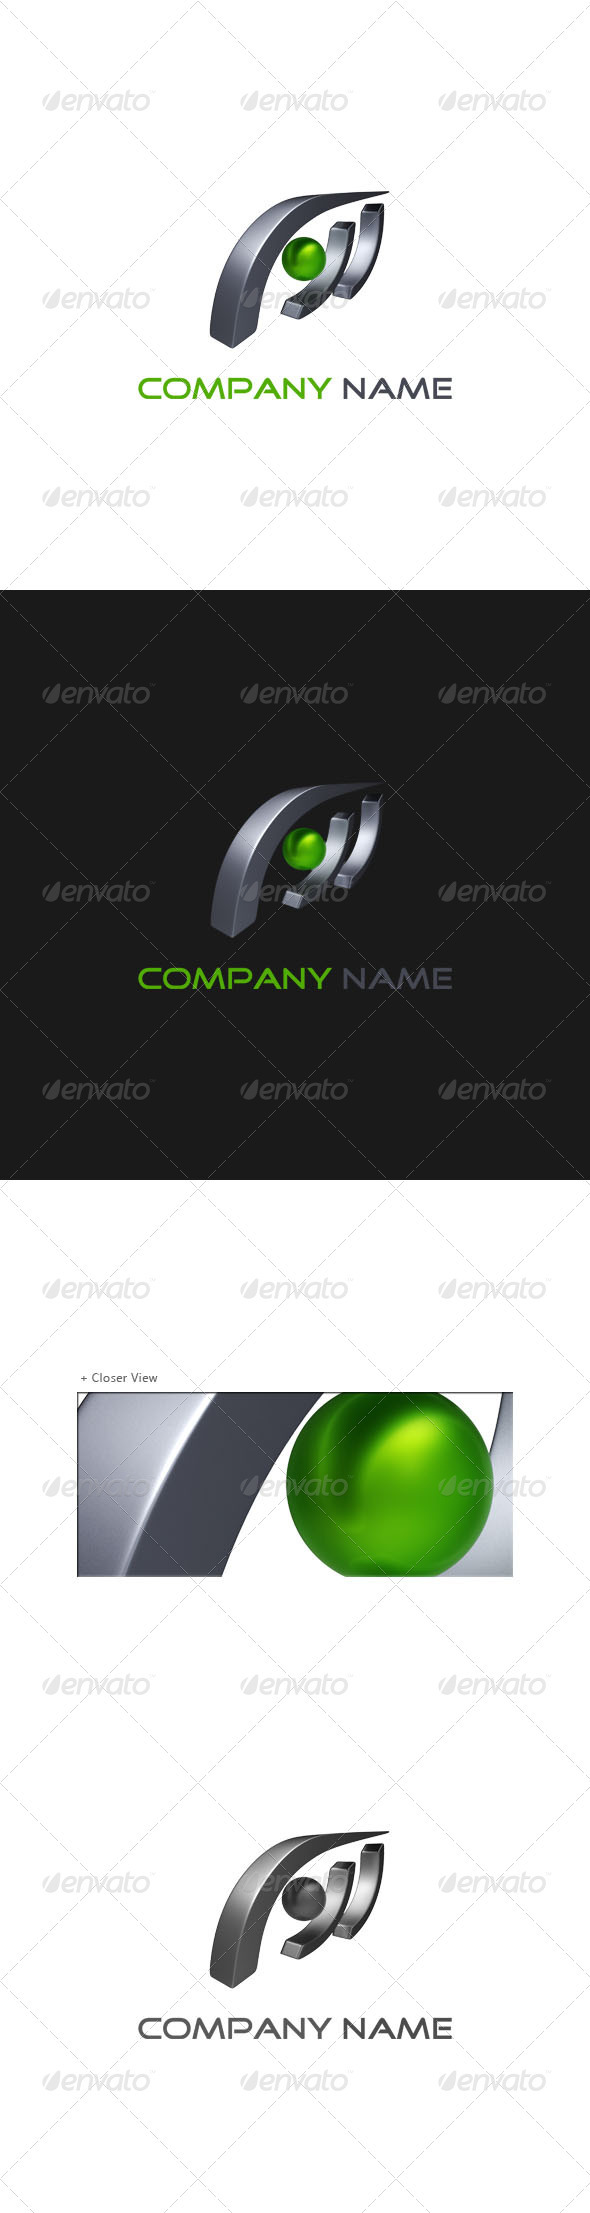 GraphicRiver 3D Abstract Logo 001 574481